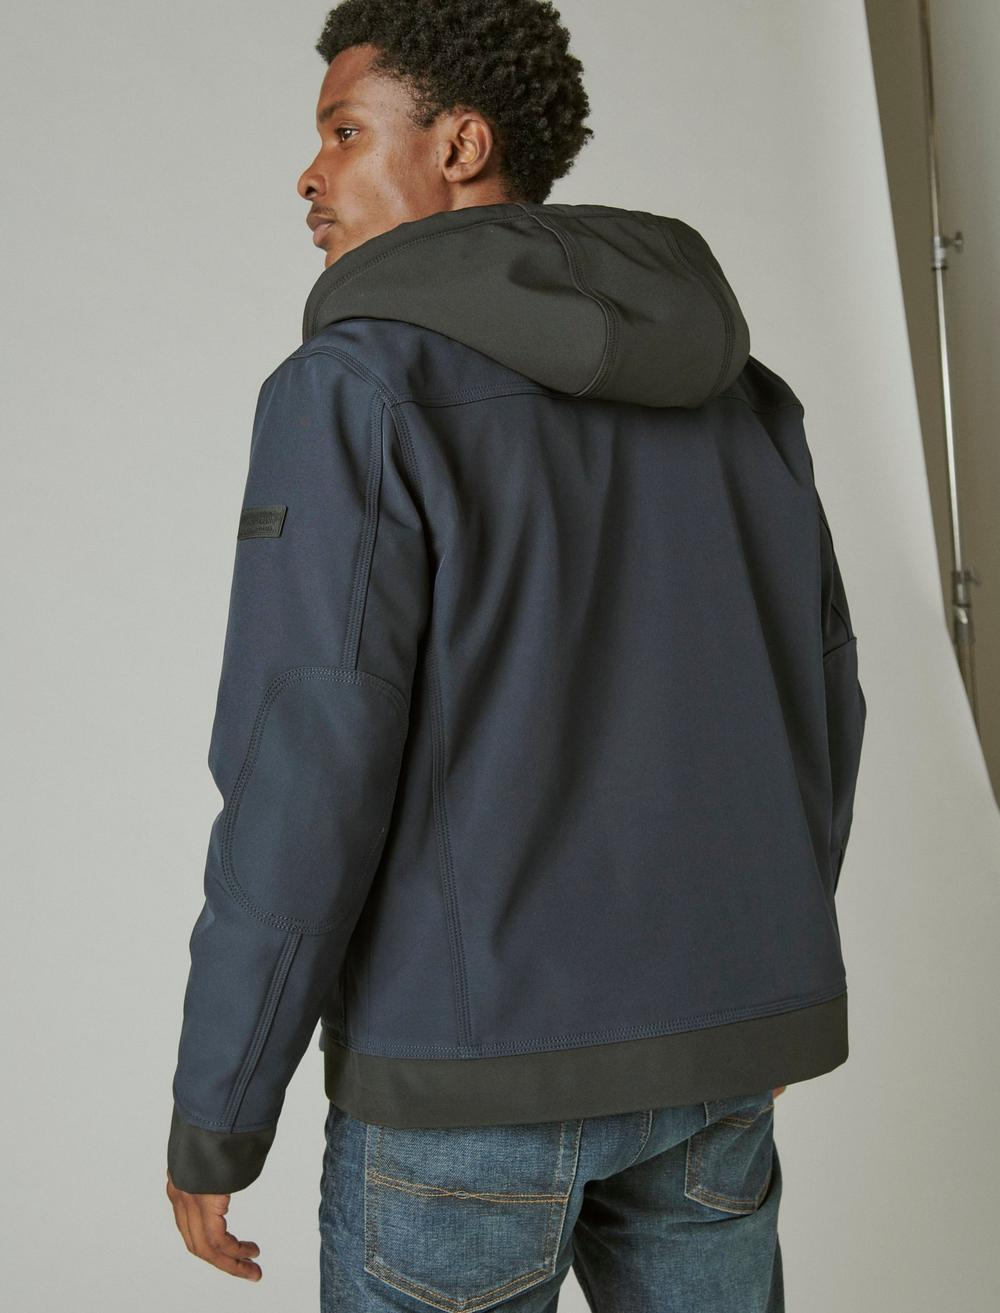 SHERPA LINED HOODED BOMBER, image 4